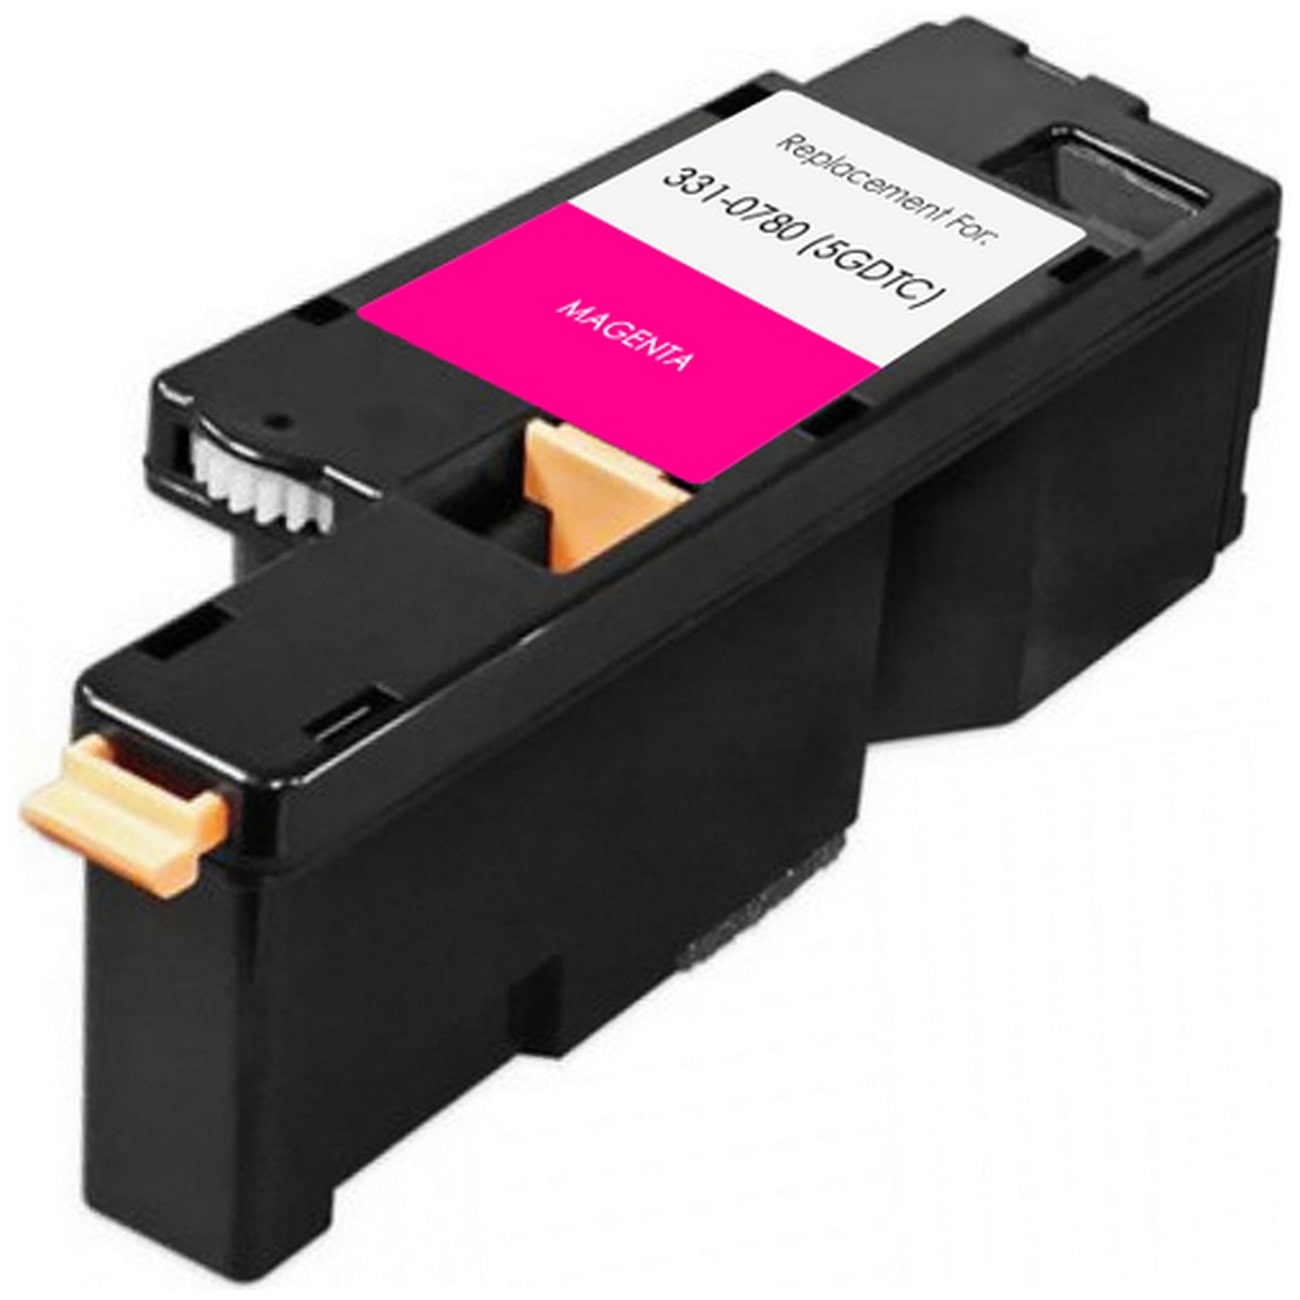 331-0780 Toner Cartridge - Dell New Compatible  (Magenta)